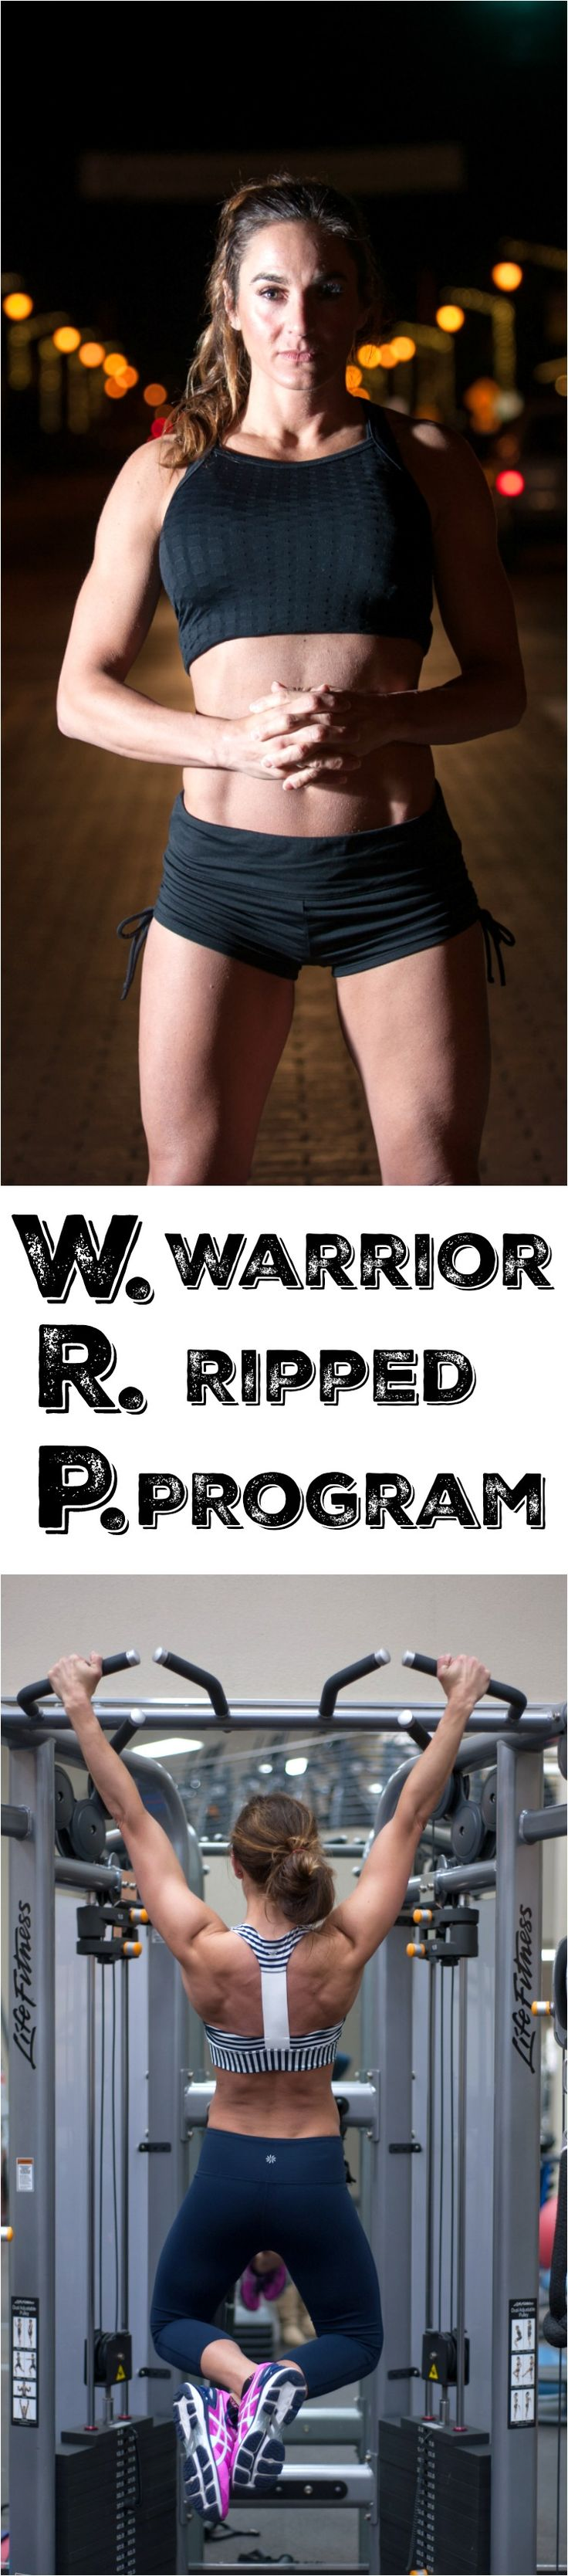 Warrior Ripped Program - Fitness Workouts - 9 Weeks of intense training that get you Warrior Ripped right at your finger tips.